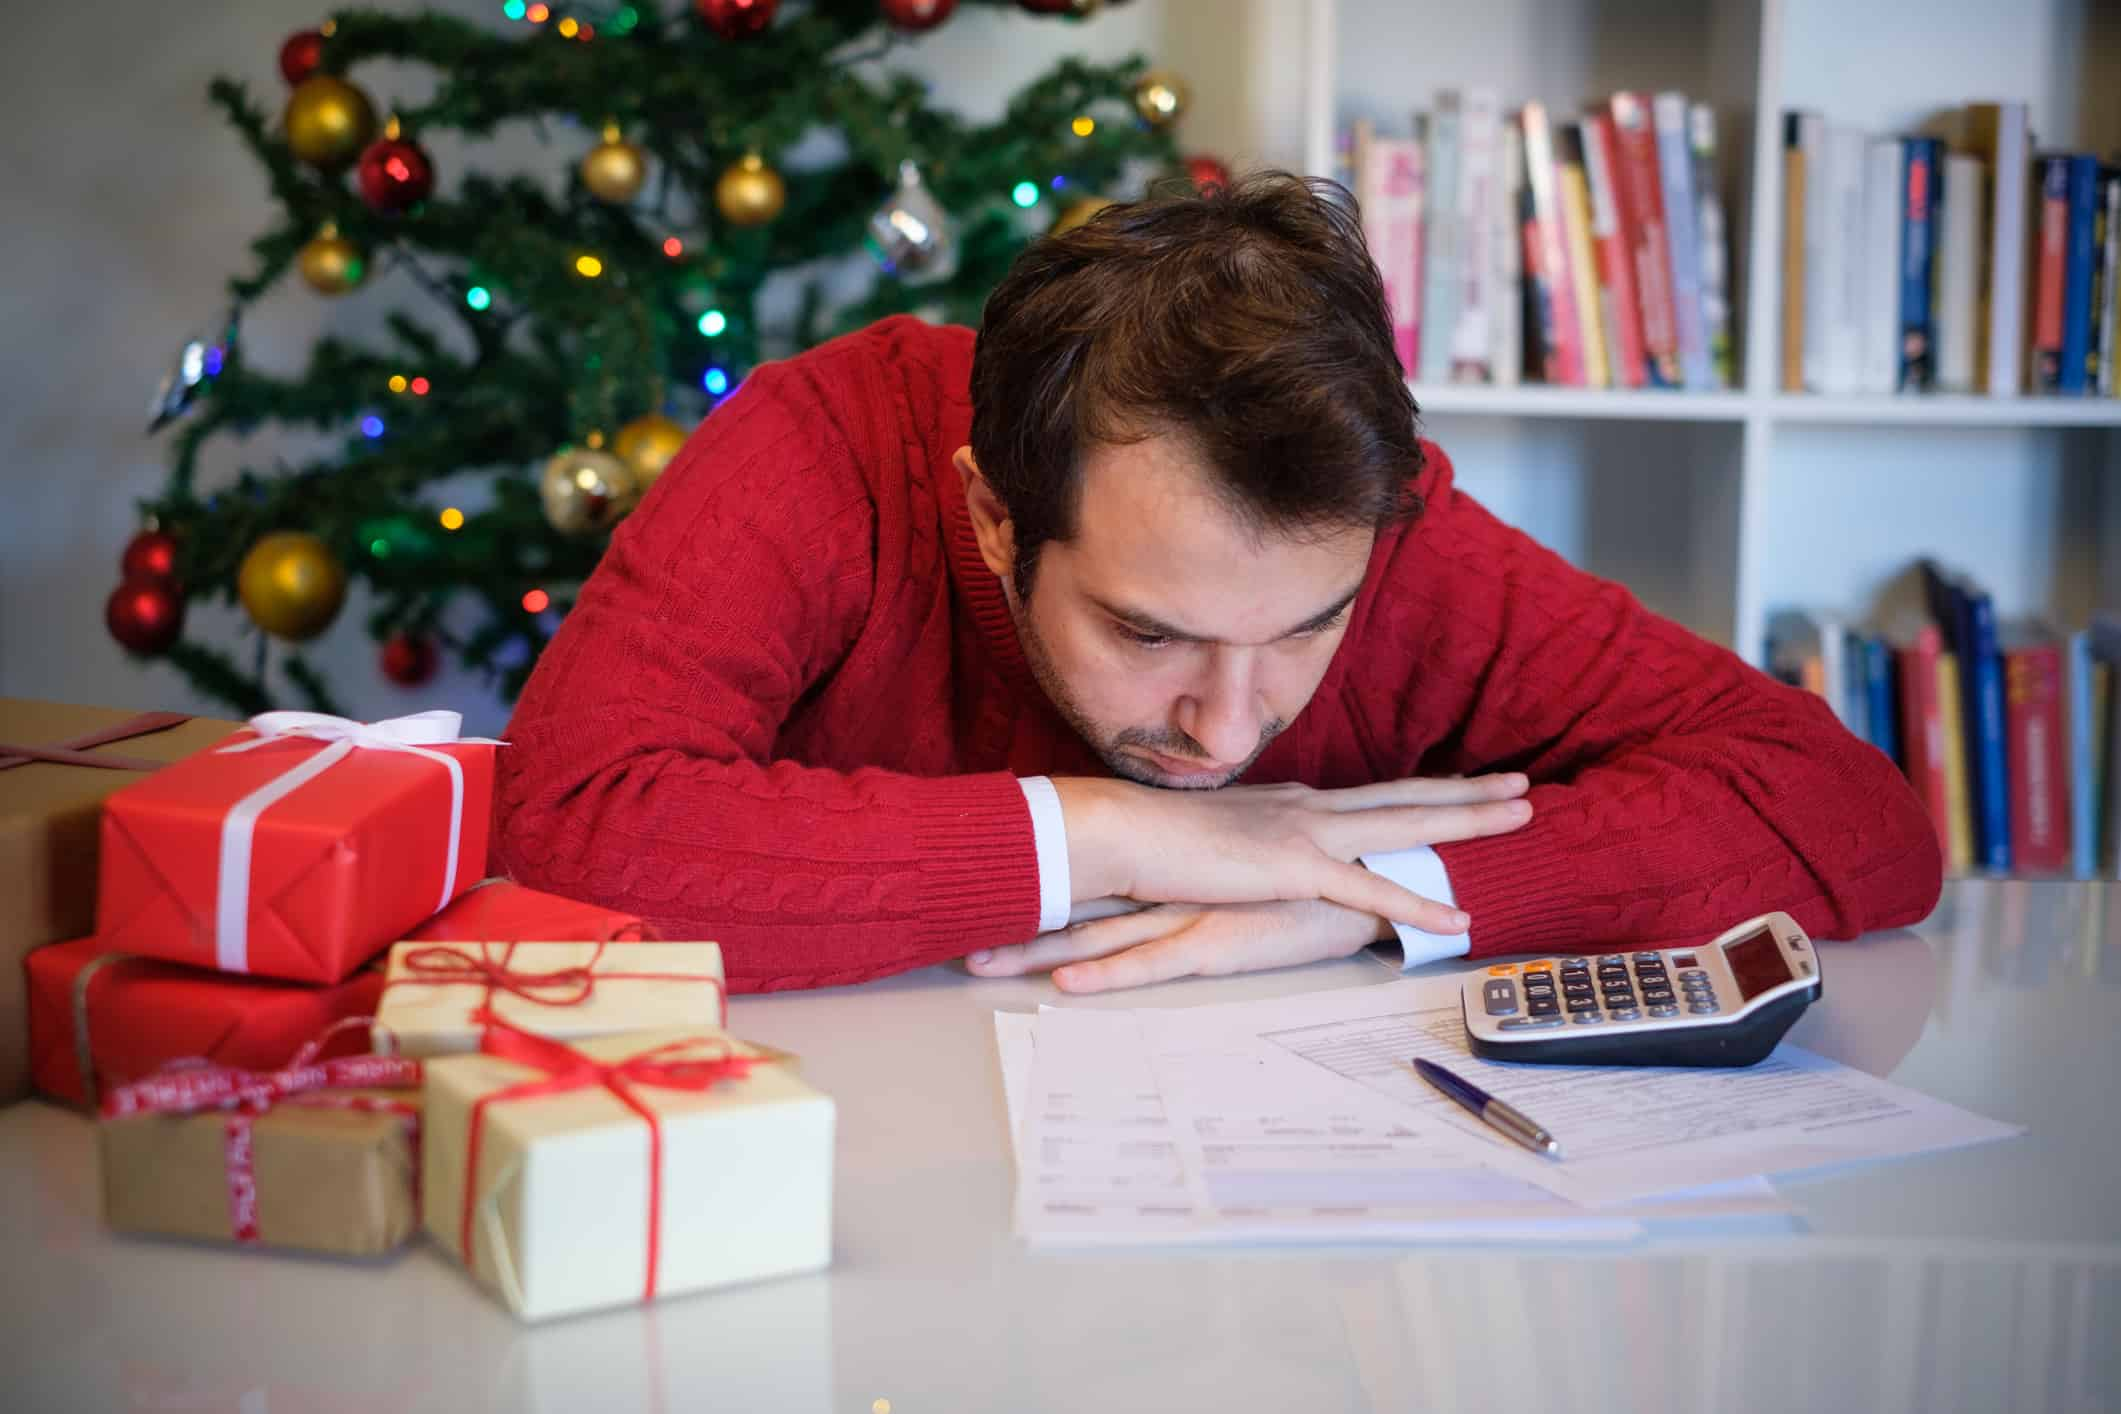 Man who can't afford to buy Christmas gifts